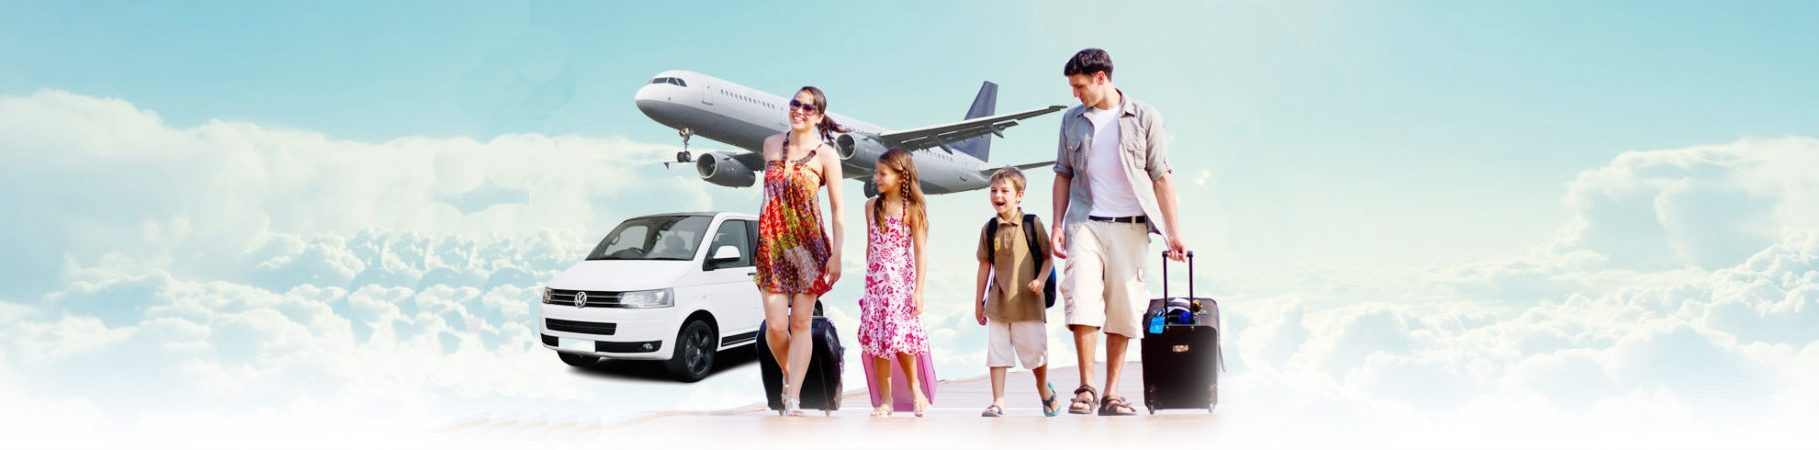 Phuket Airport Shuttle Transfer to Hotels in Paton, Surin, Kamala, Kata beach and Khao Lak